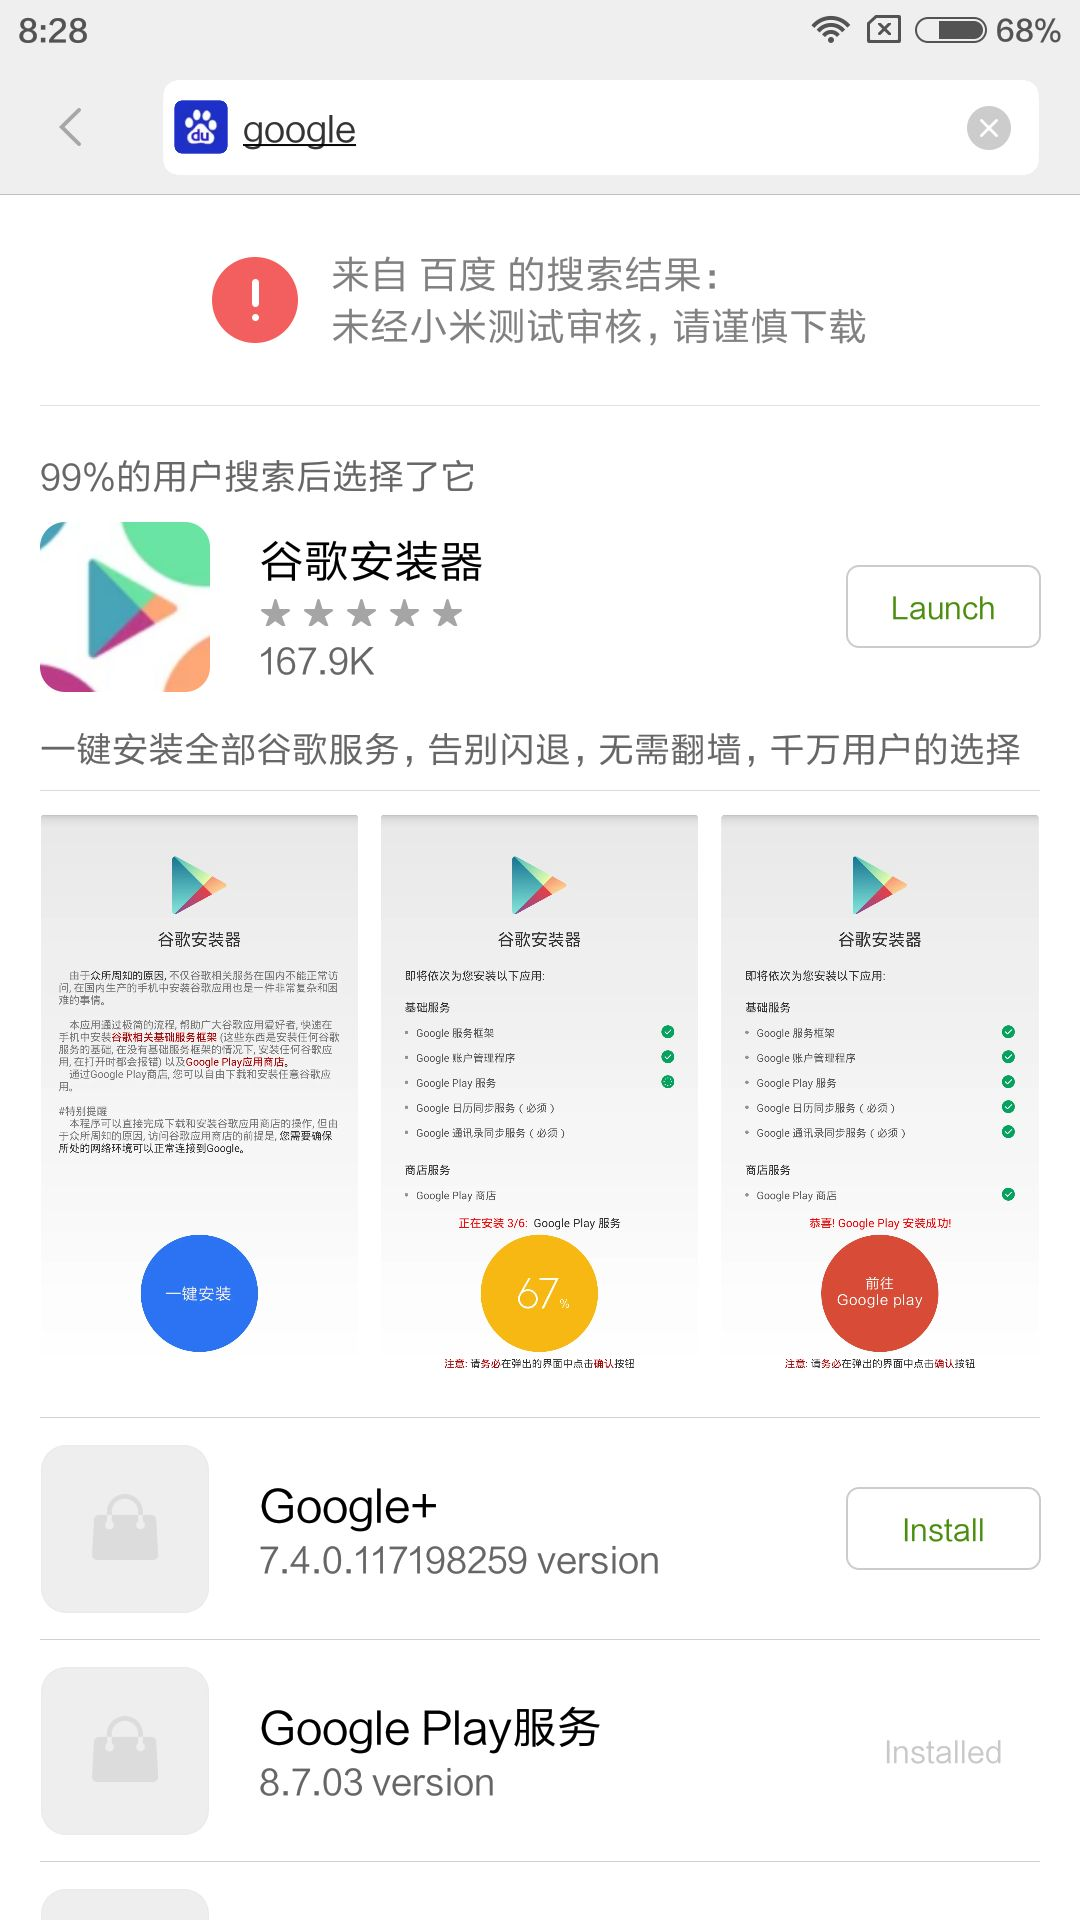 How to Install the Google Play Store on Xiaomi Mi5